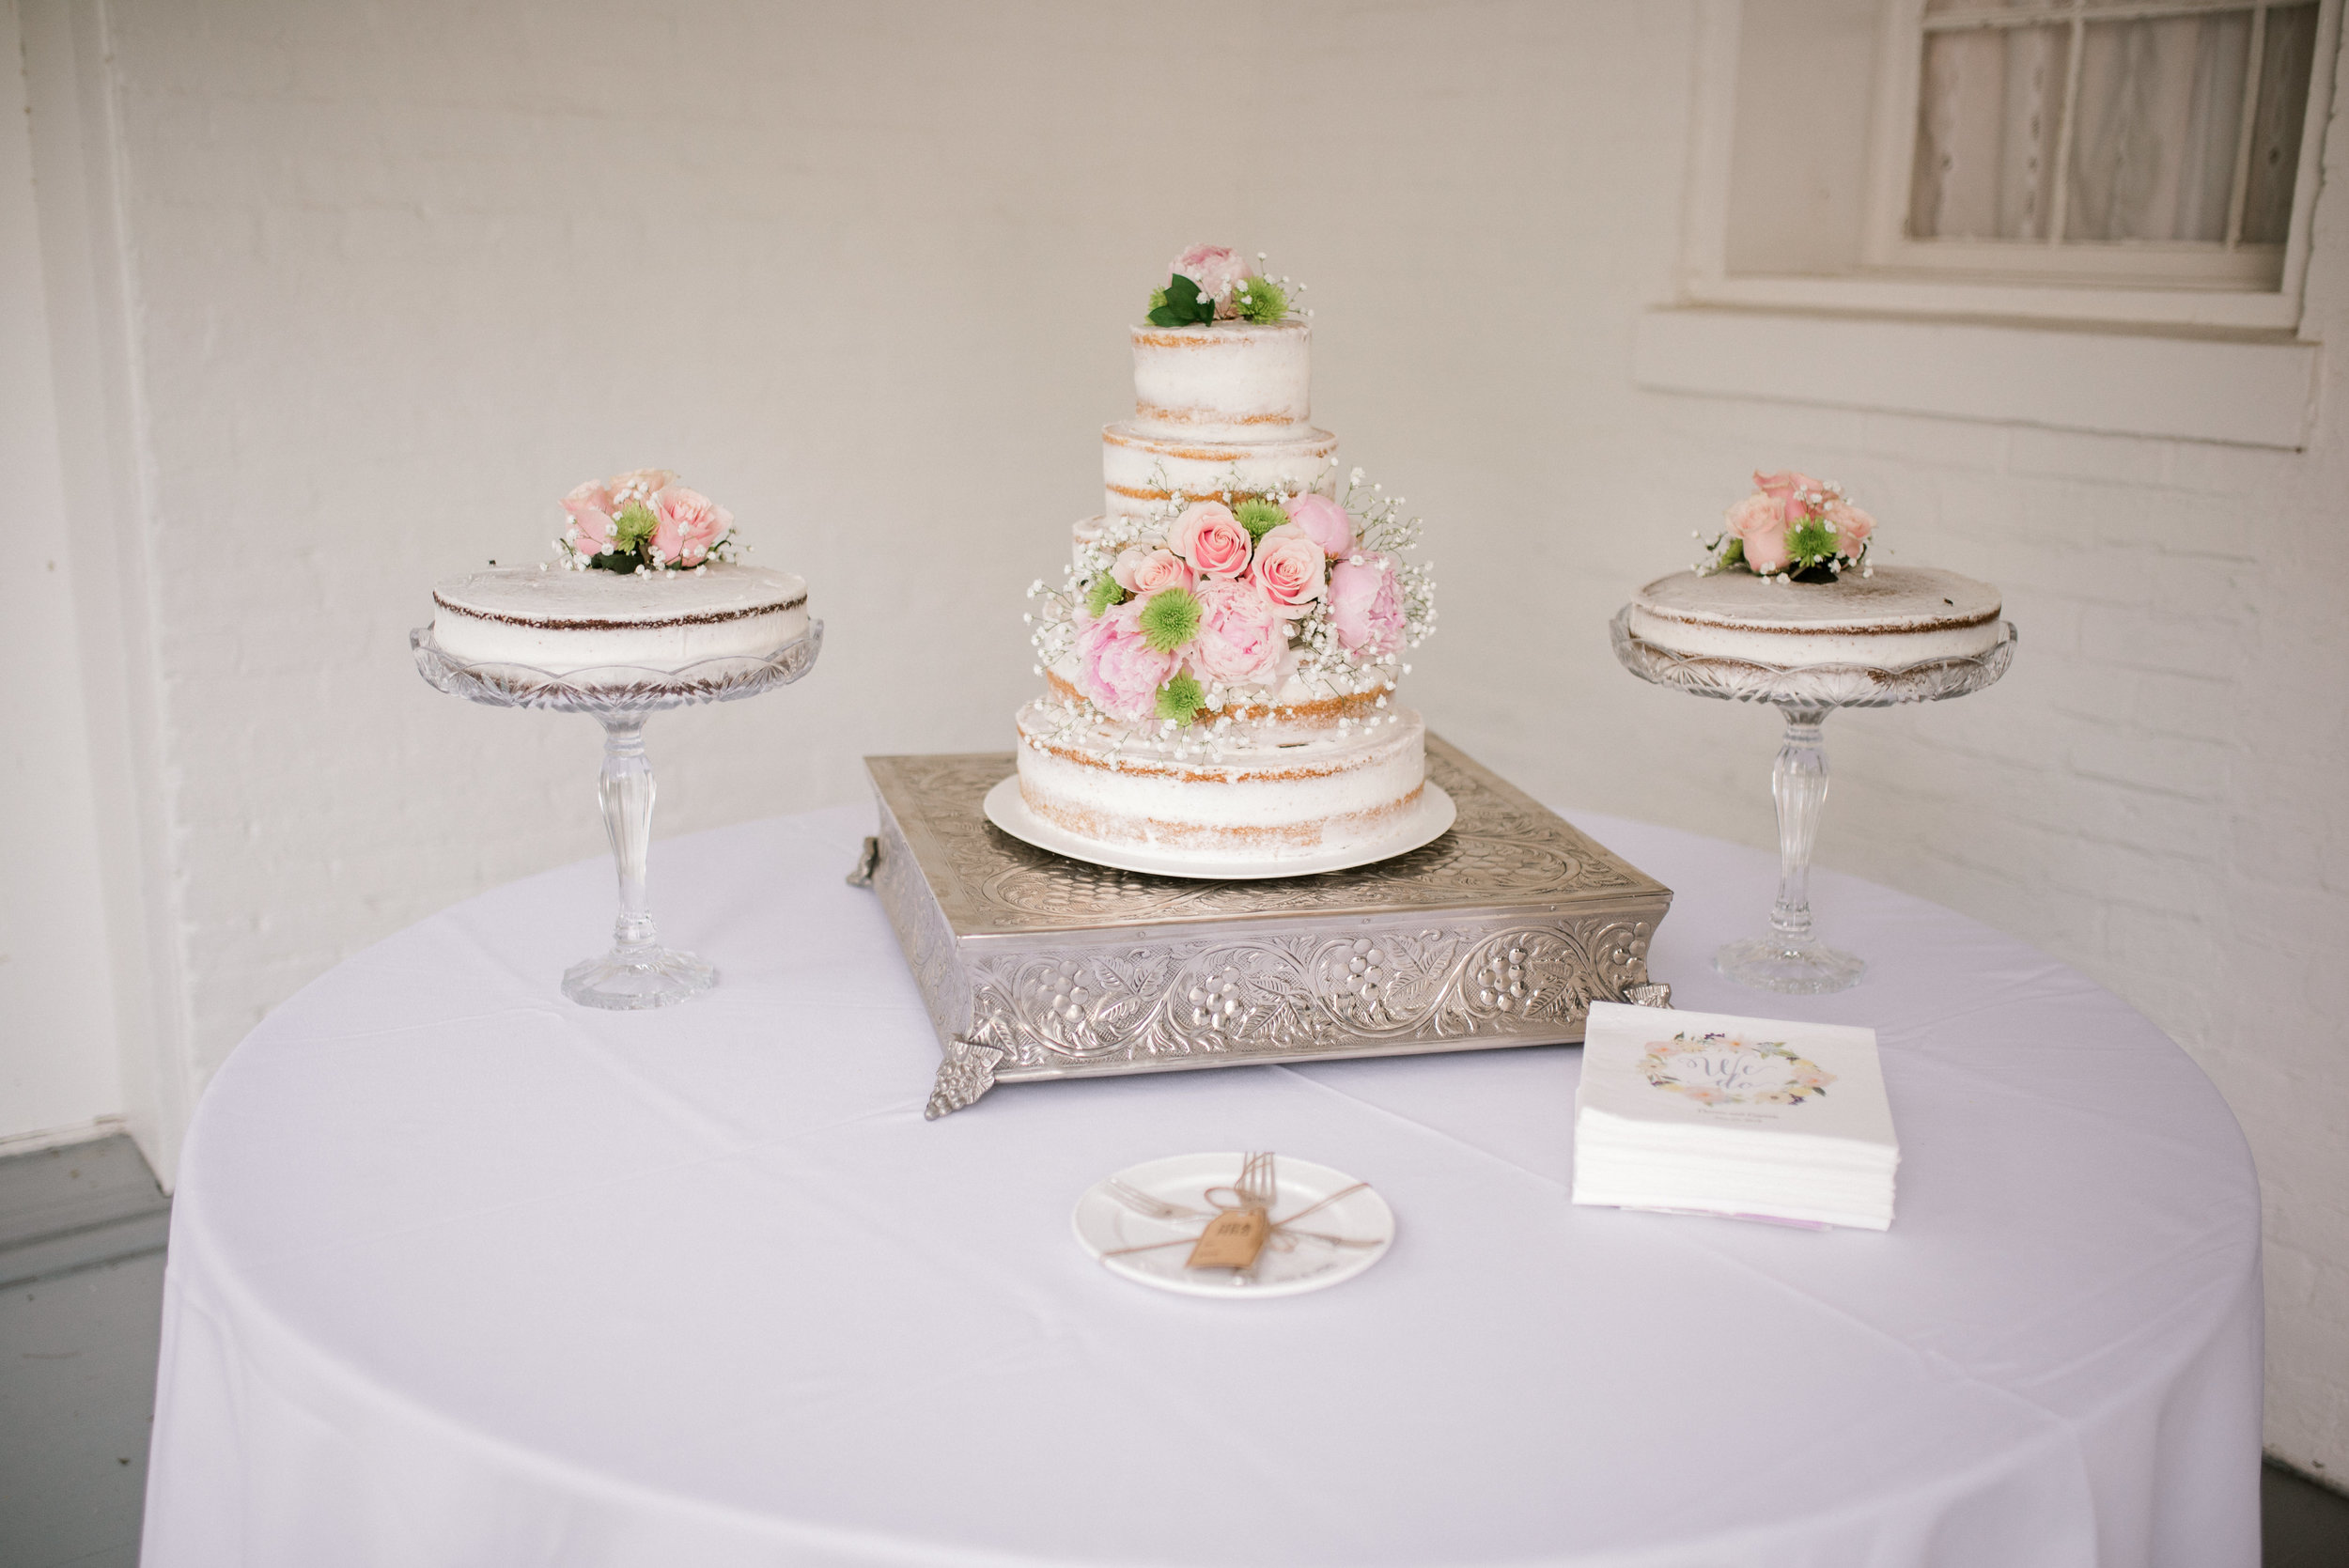 lexington-kentucky-wedding-photographer-cake